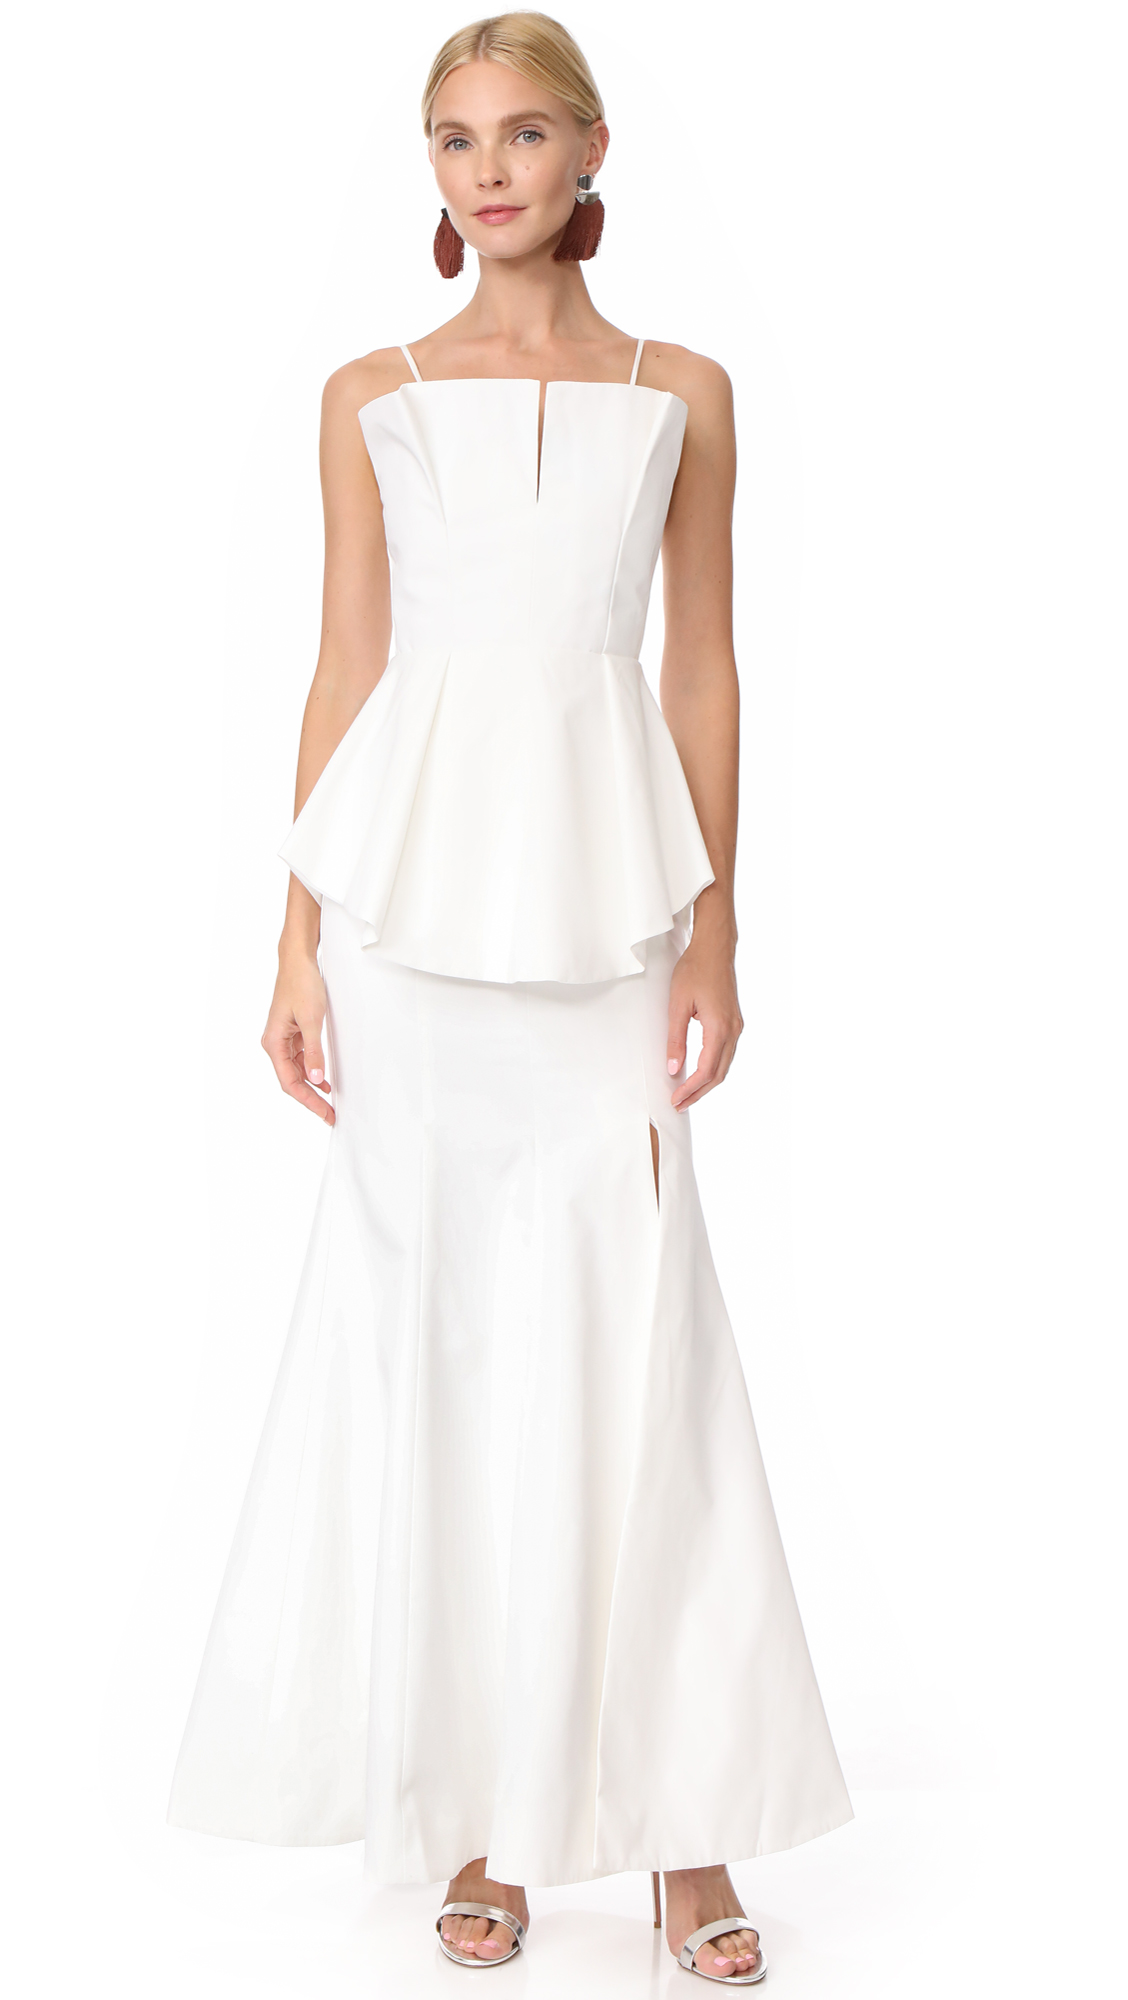 C/Meo Collective Conduit Full Length Dress - Ivory